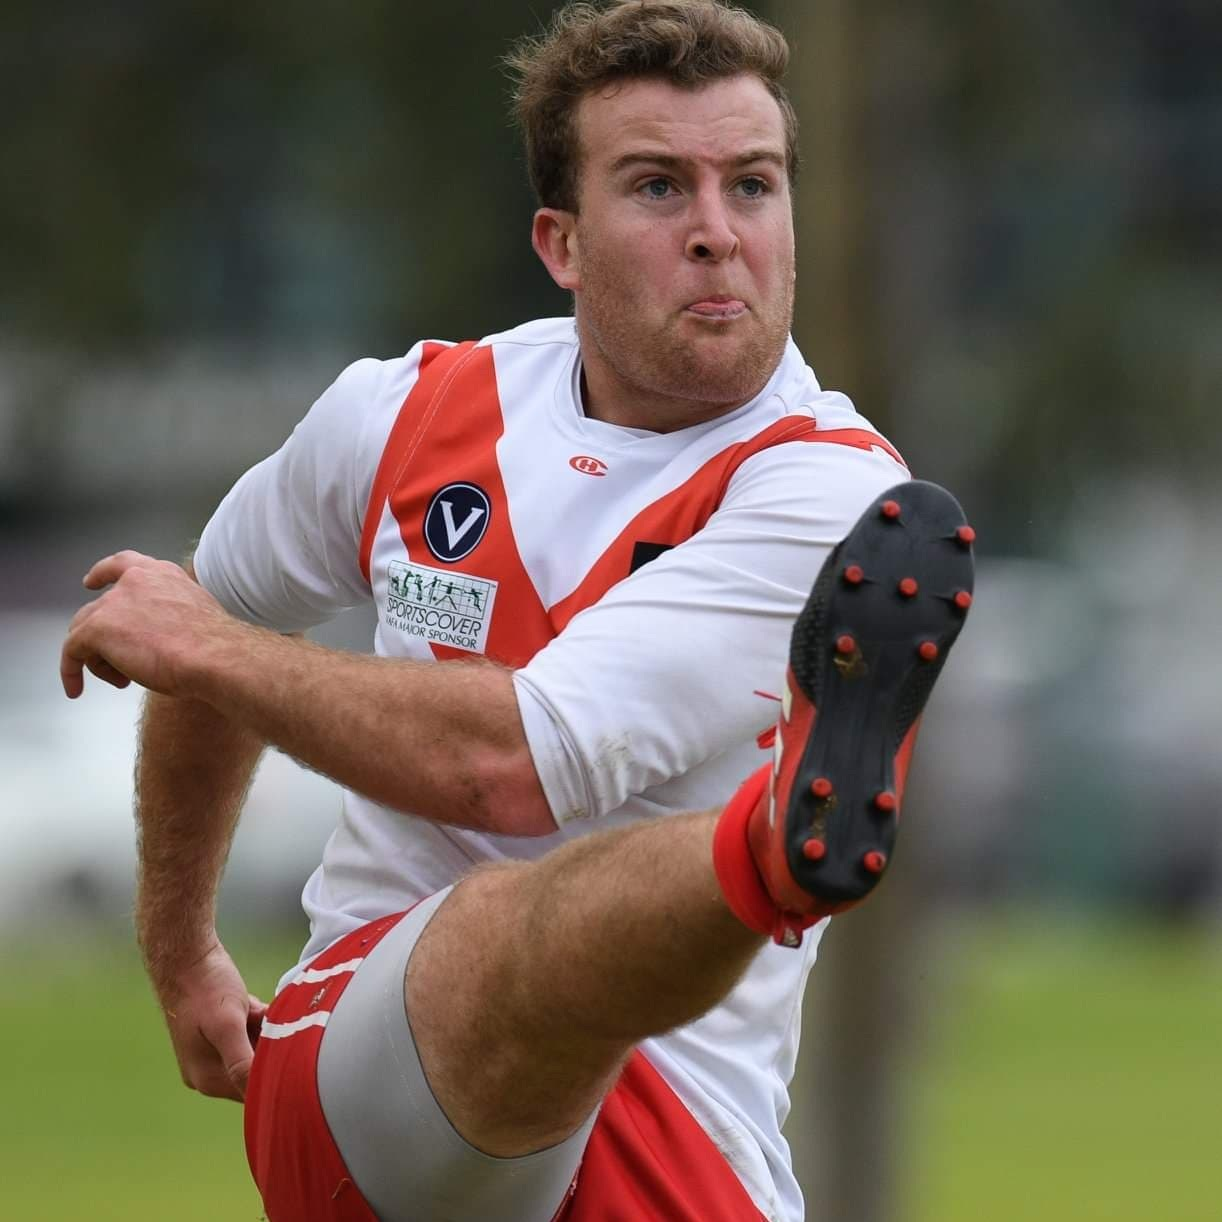 Jack S  #24 is being worn by Jack S this season- Jack comes to SMDFC as a hockey convert due to the lack of contact in hockey! He has 9 years of footy experience under his belt and sites winning the 2019 Premiership at Brunswick CC as his all time sporting achievement- a man of many sports! Off the ground you'll find Jack avoiding shower time after the game and spending time with his family. A little known fact about Jack: He is a US citizen!!